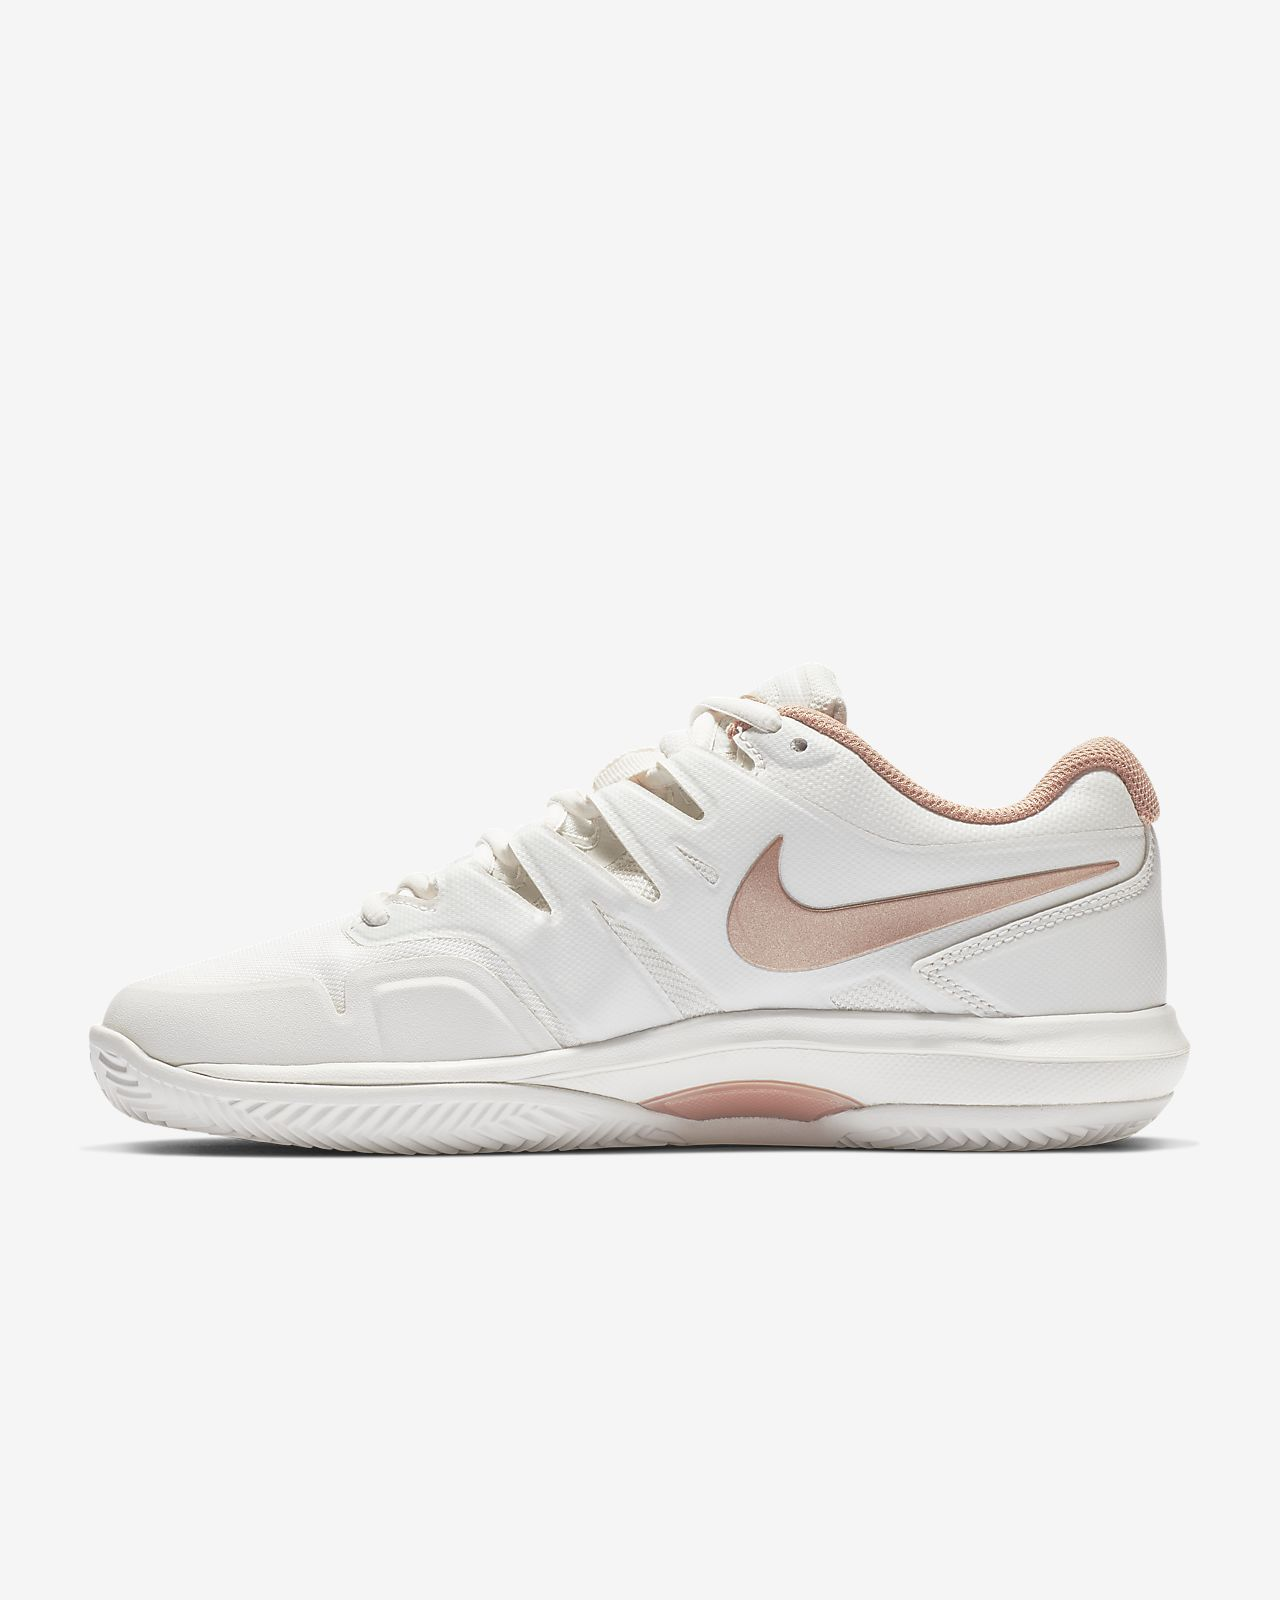 Nike Air Zoom Prestige Clay Women s Tennis Shoe. Nike.com SA 80bc263e3